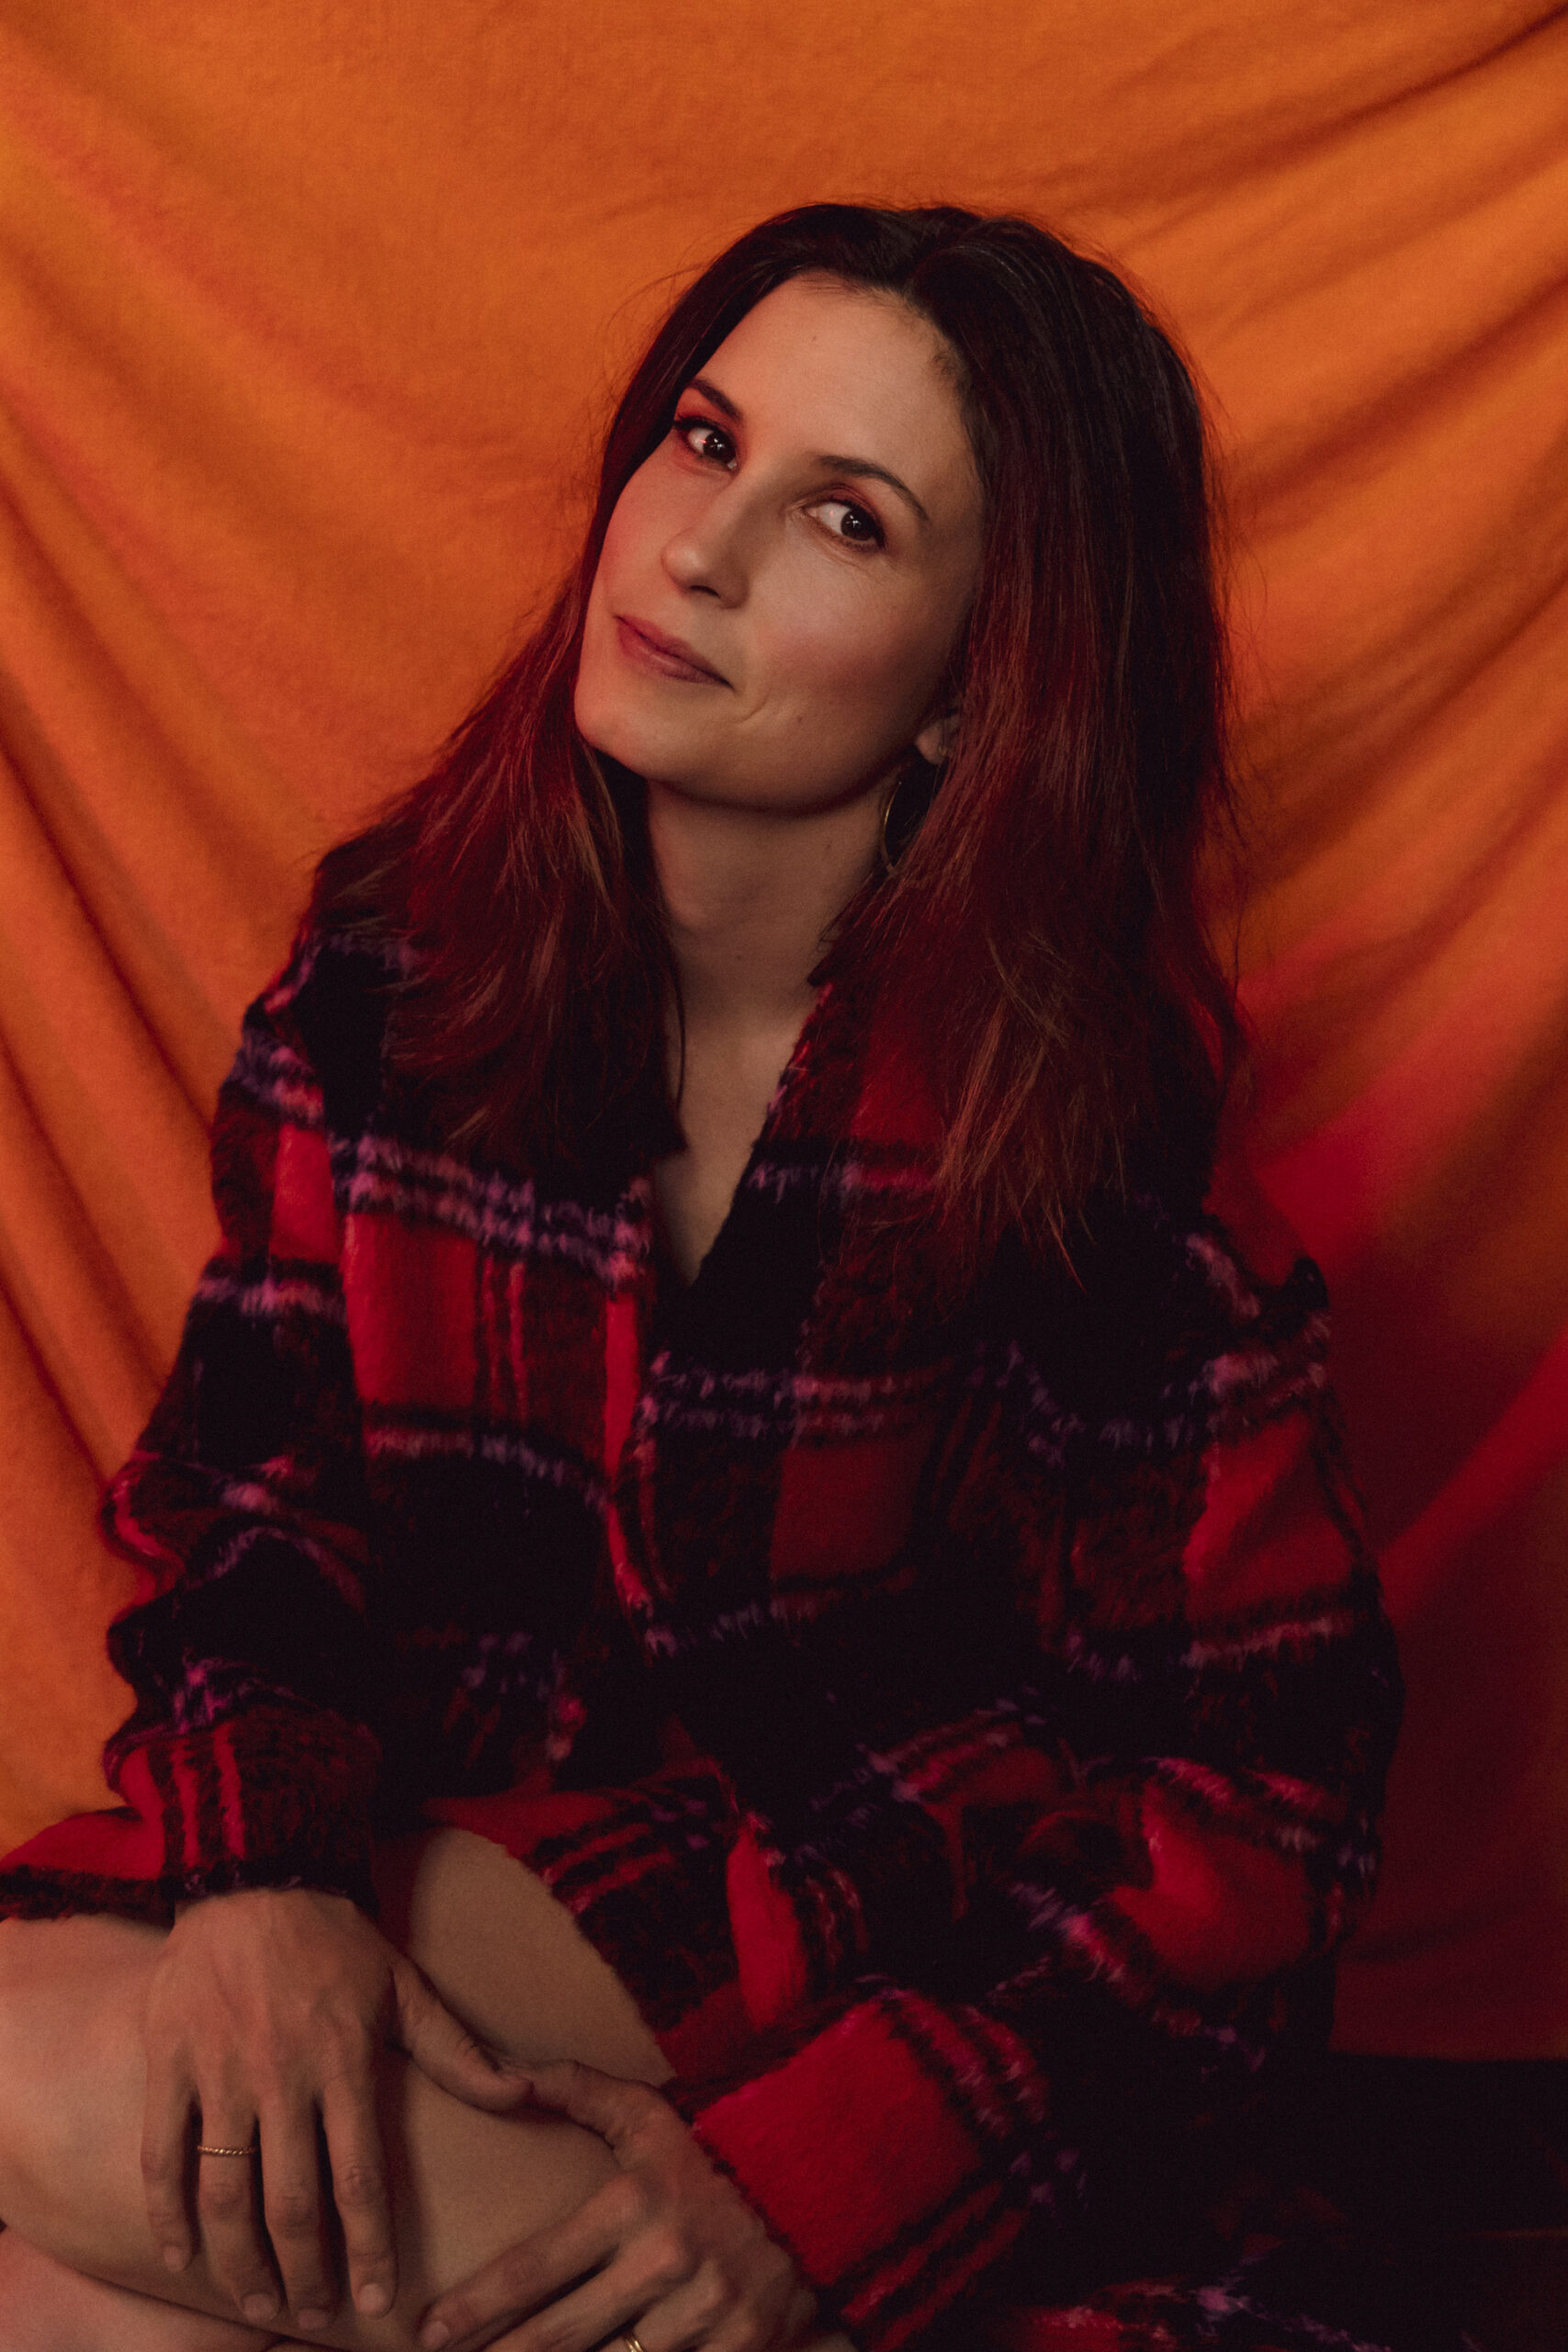 MISSY HIGGINS ANNOUNCES HER FIRST SHOW OF 2021 AT MELBOURNE'S SIDNEY MYER MUSIC BOWL ON 27 JANUARY